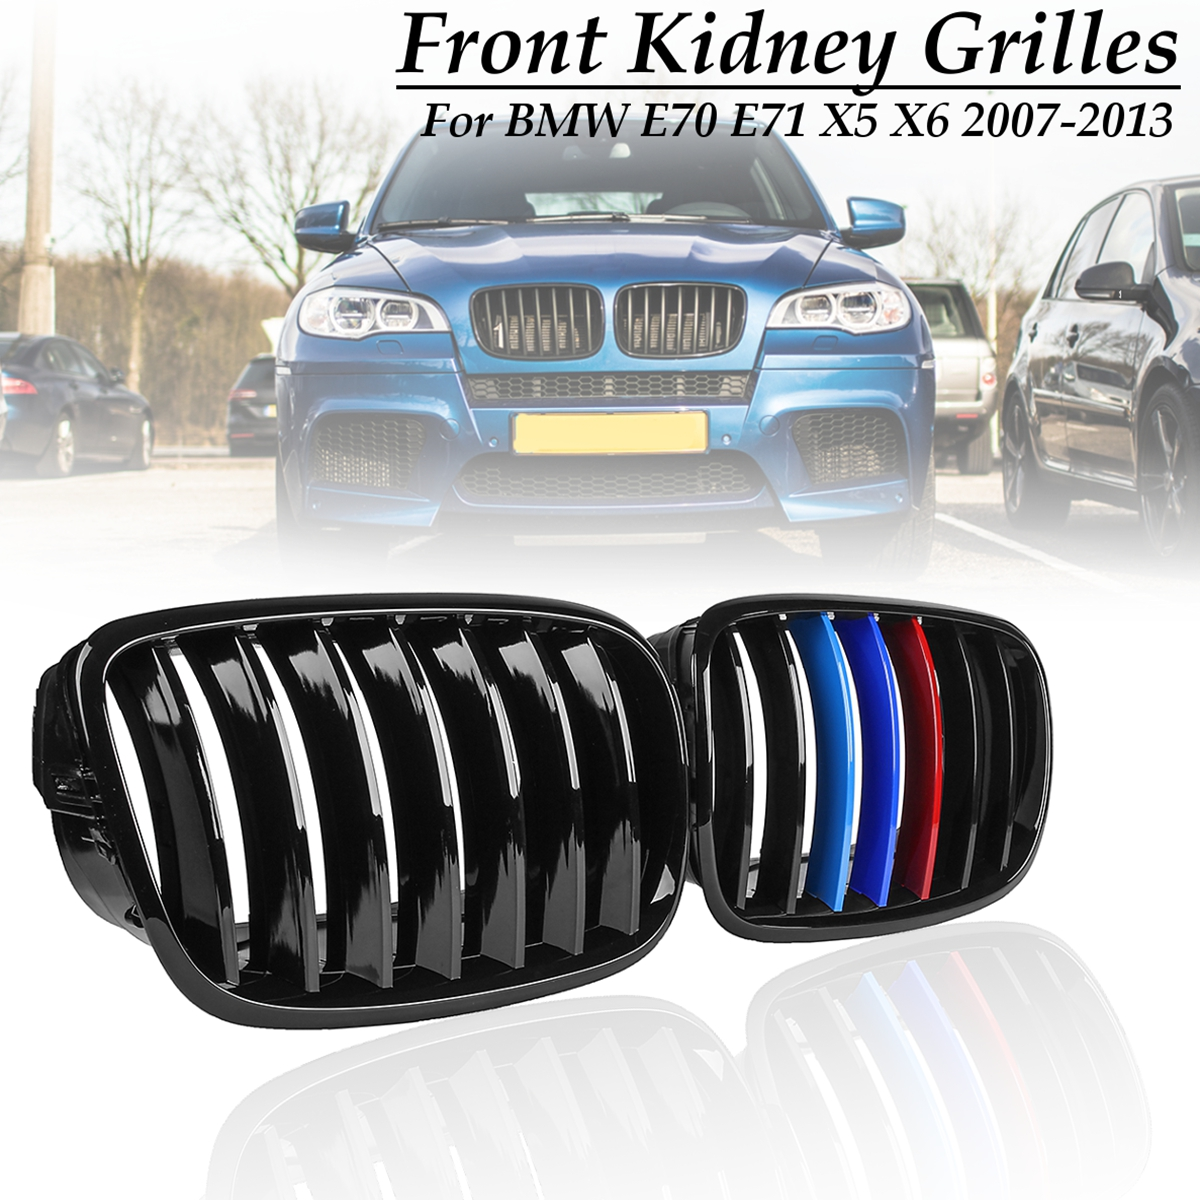 Slat Front Kidney Grill Grilles for Gloss Black M Color for BMW E70 E71 X5 X6